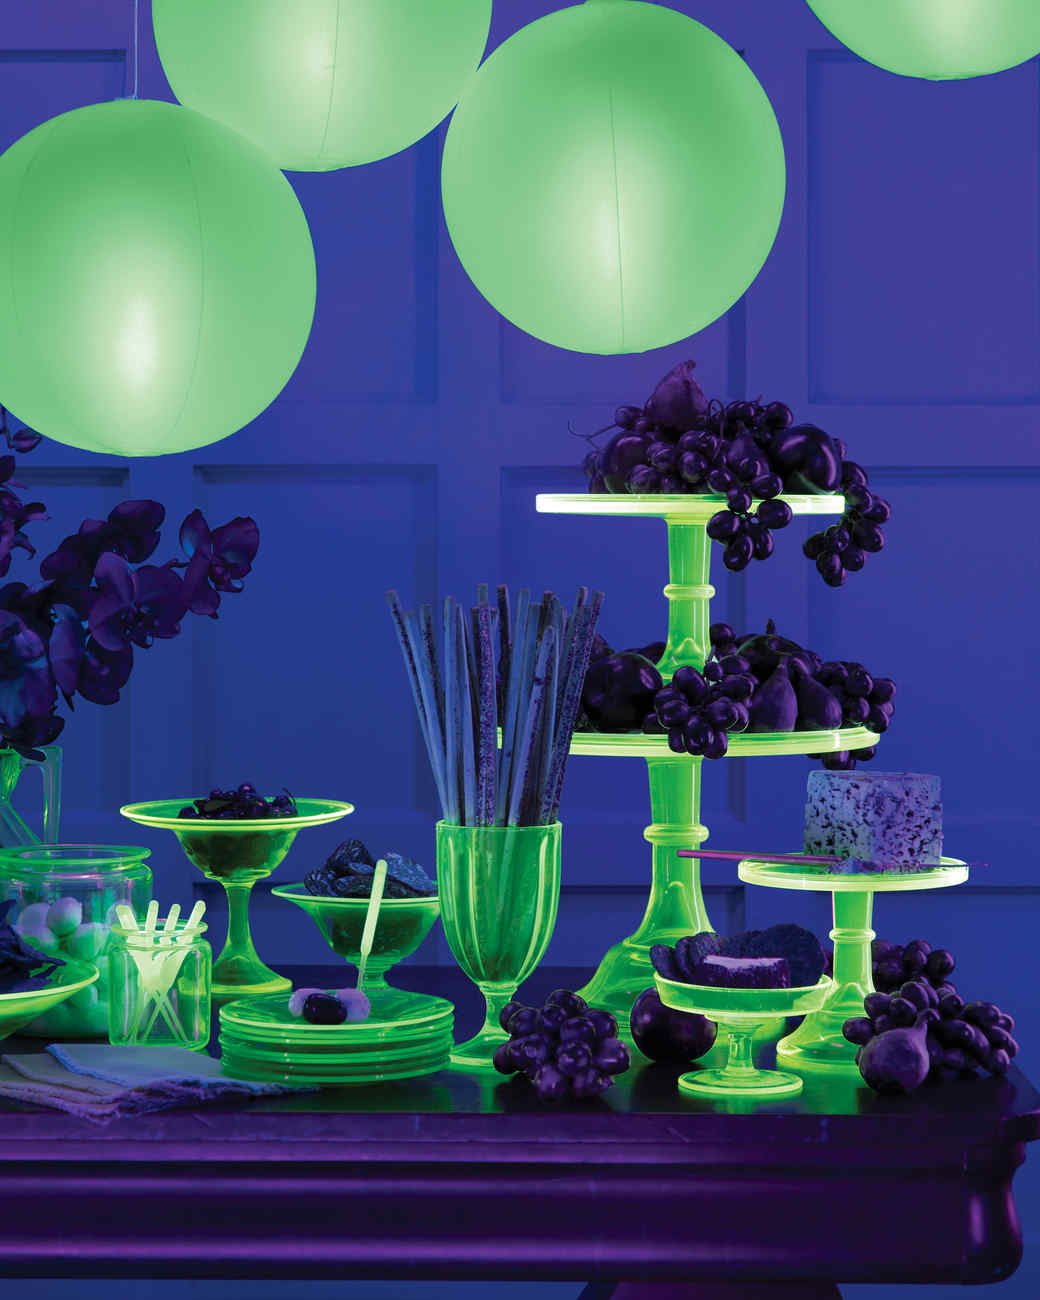 Glowing Cups and Candlesticks